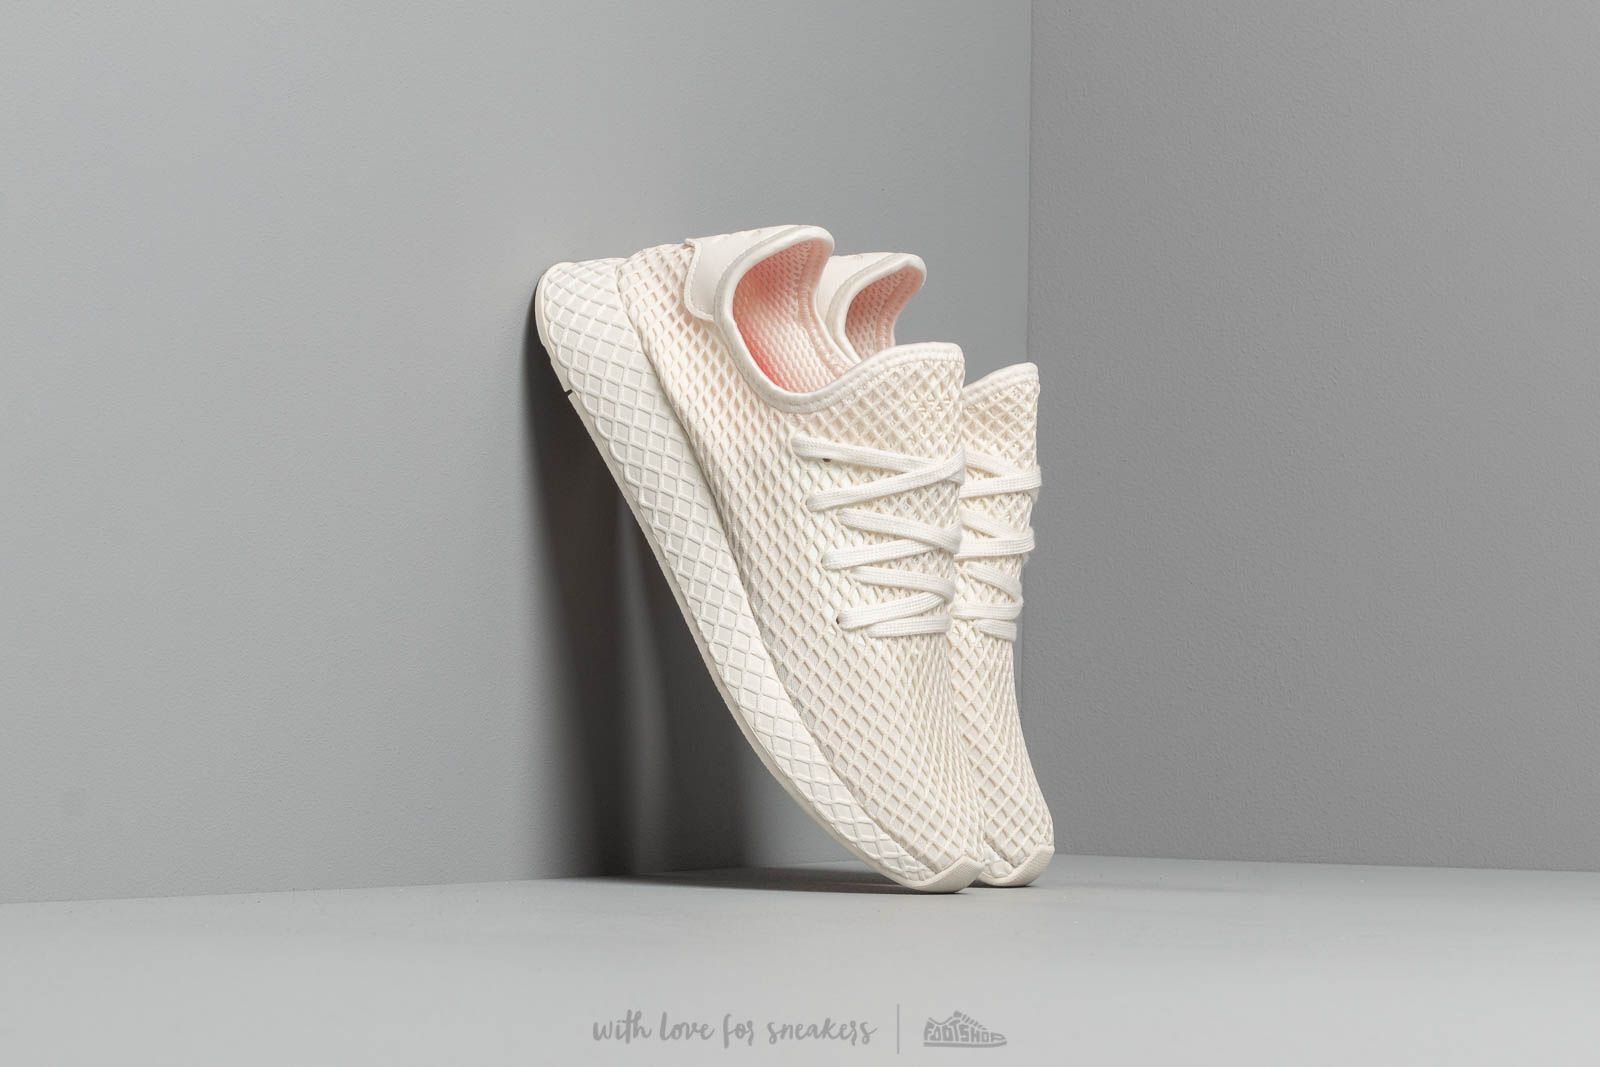 d083edeec524a adidas Deerupt Runner Off White  Ftw White  Shored at a great price 92 €